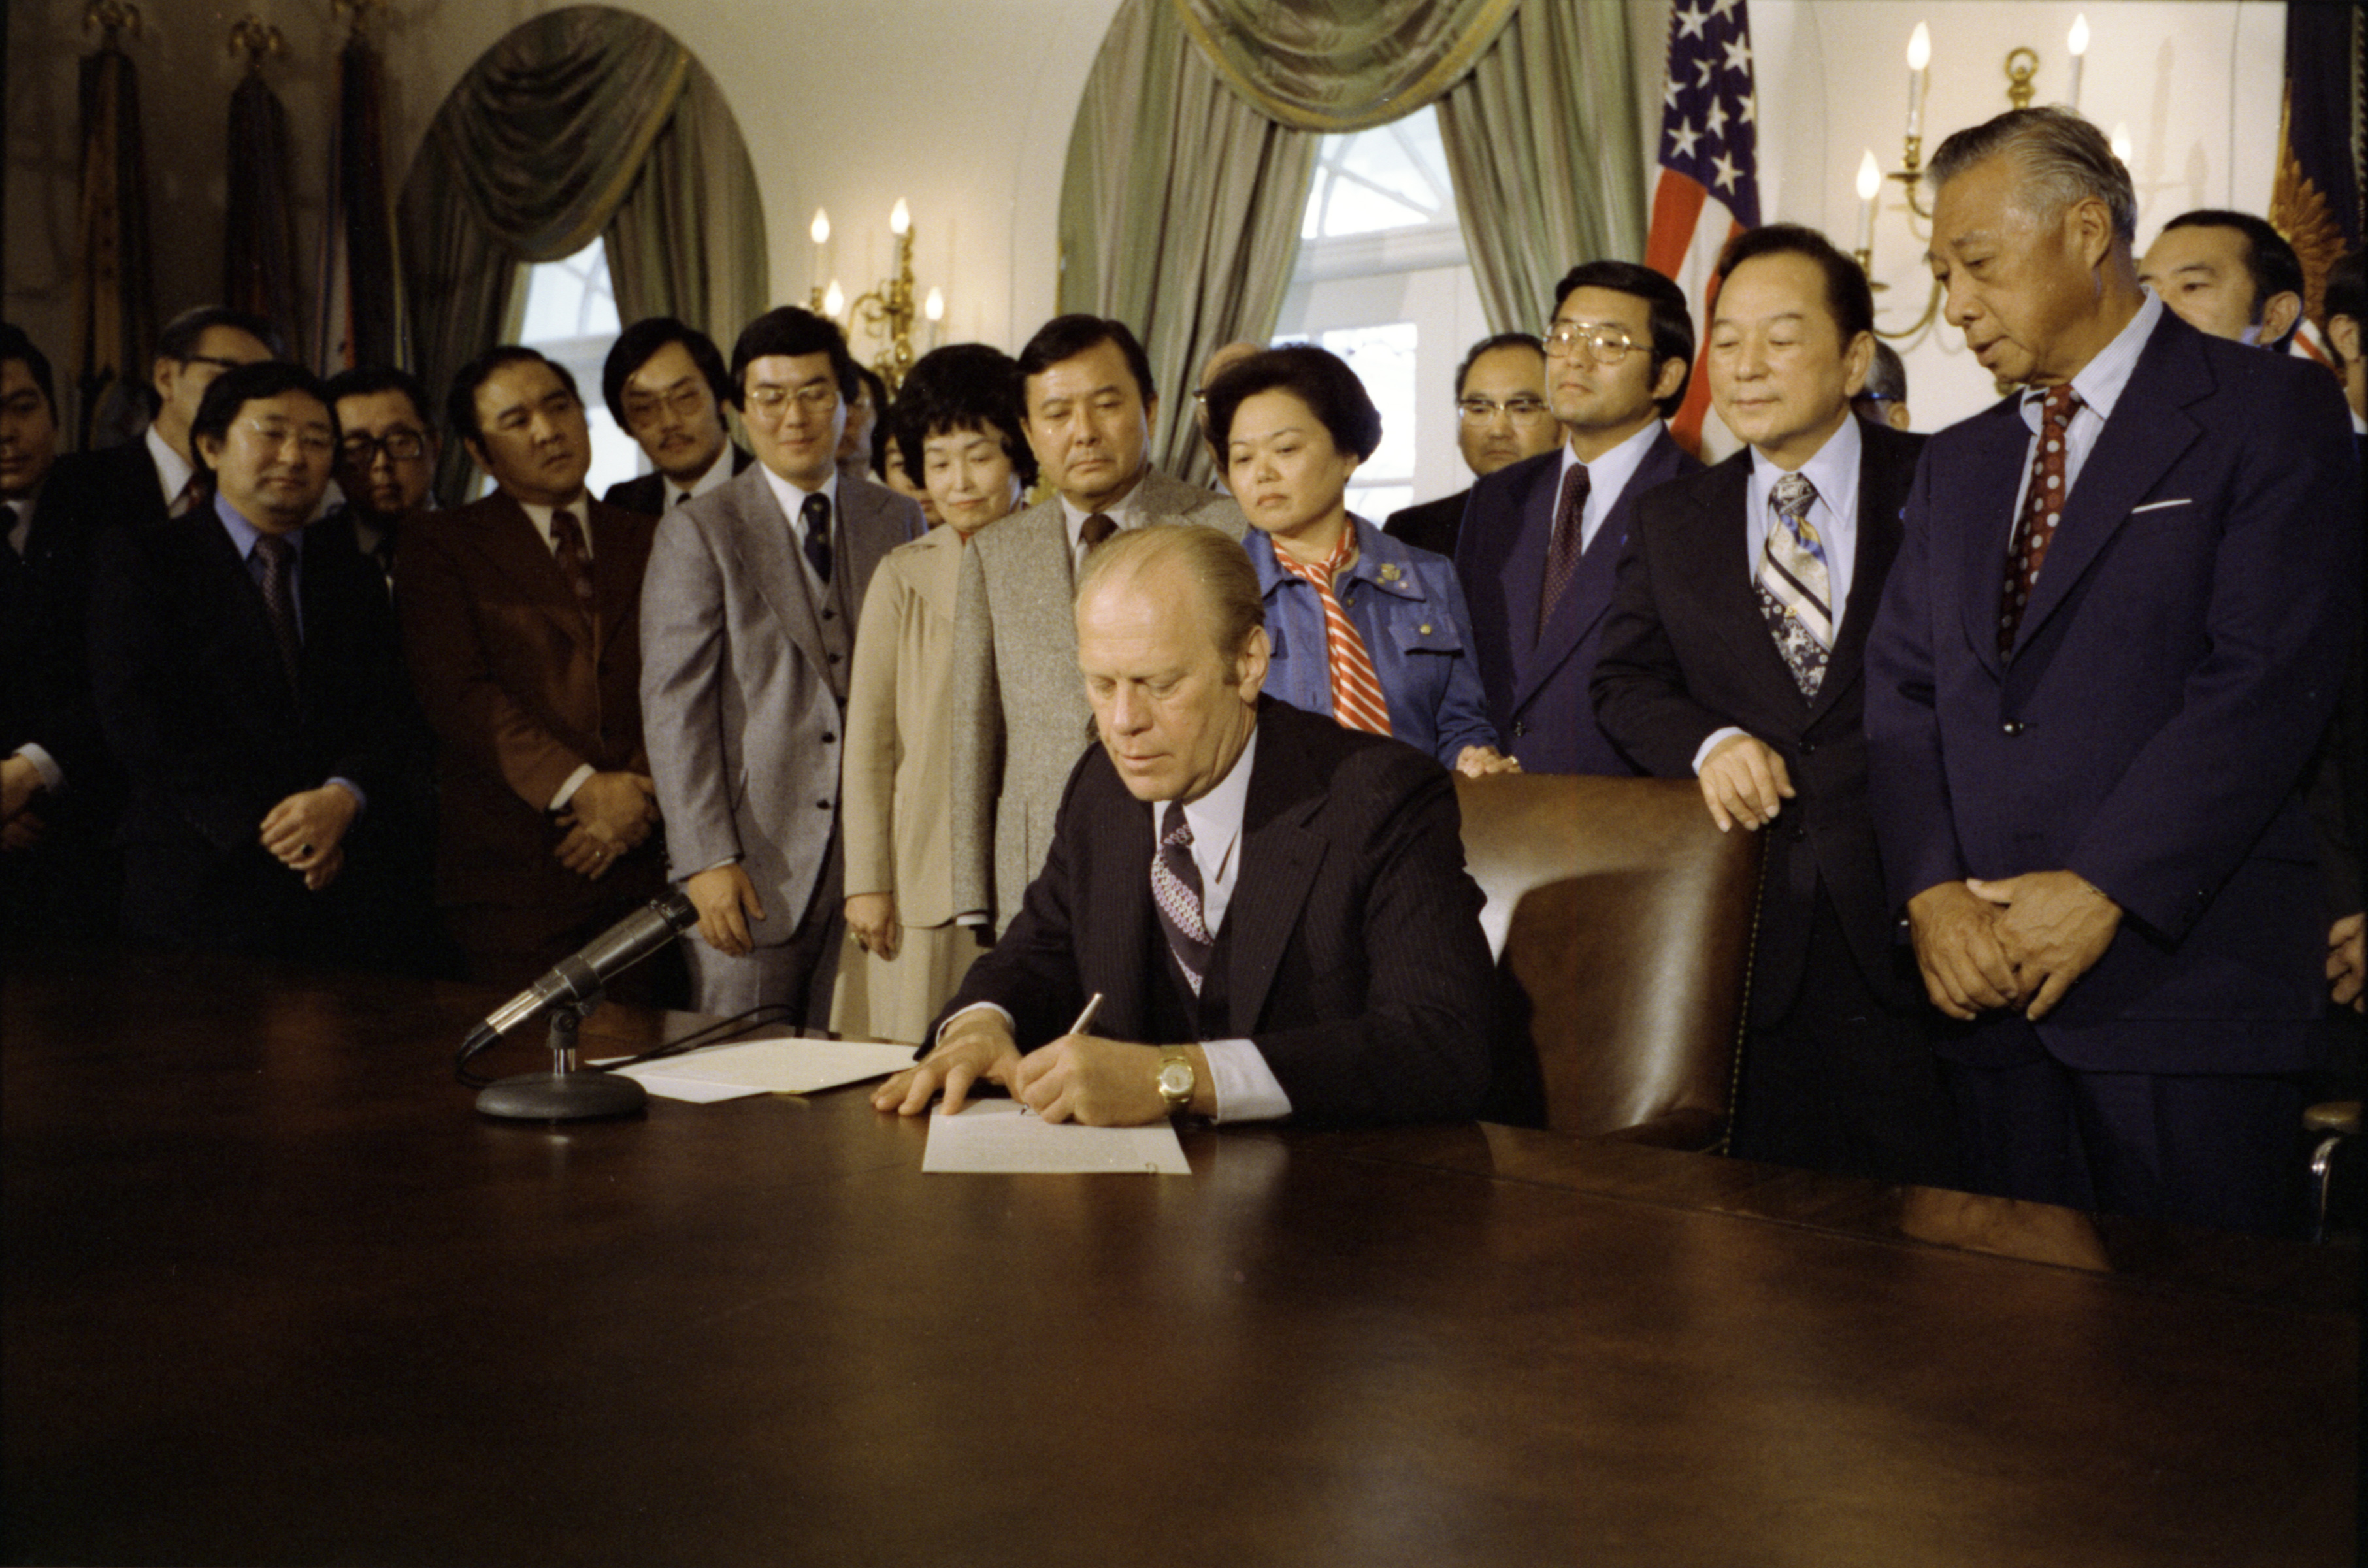 The Incarceration of Japanese-Americans during World War II